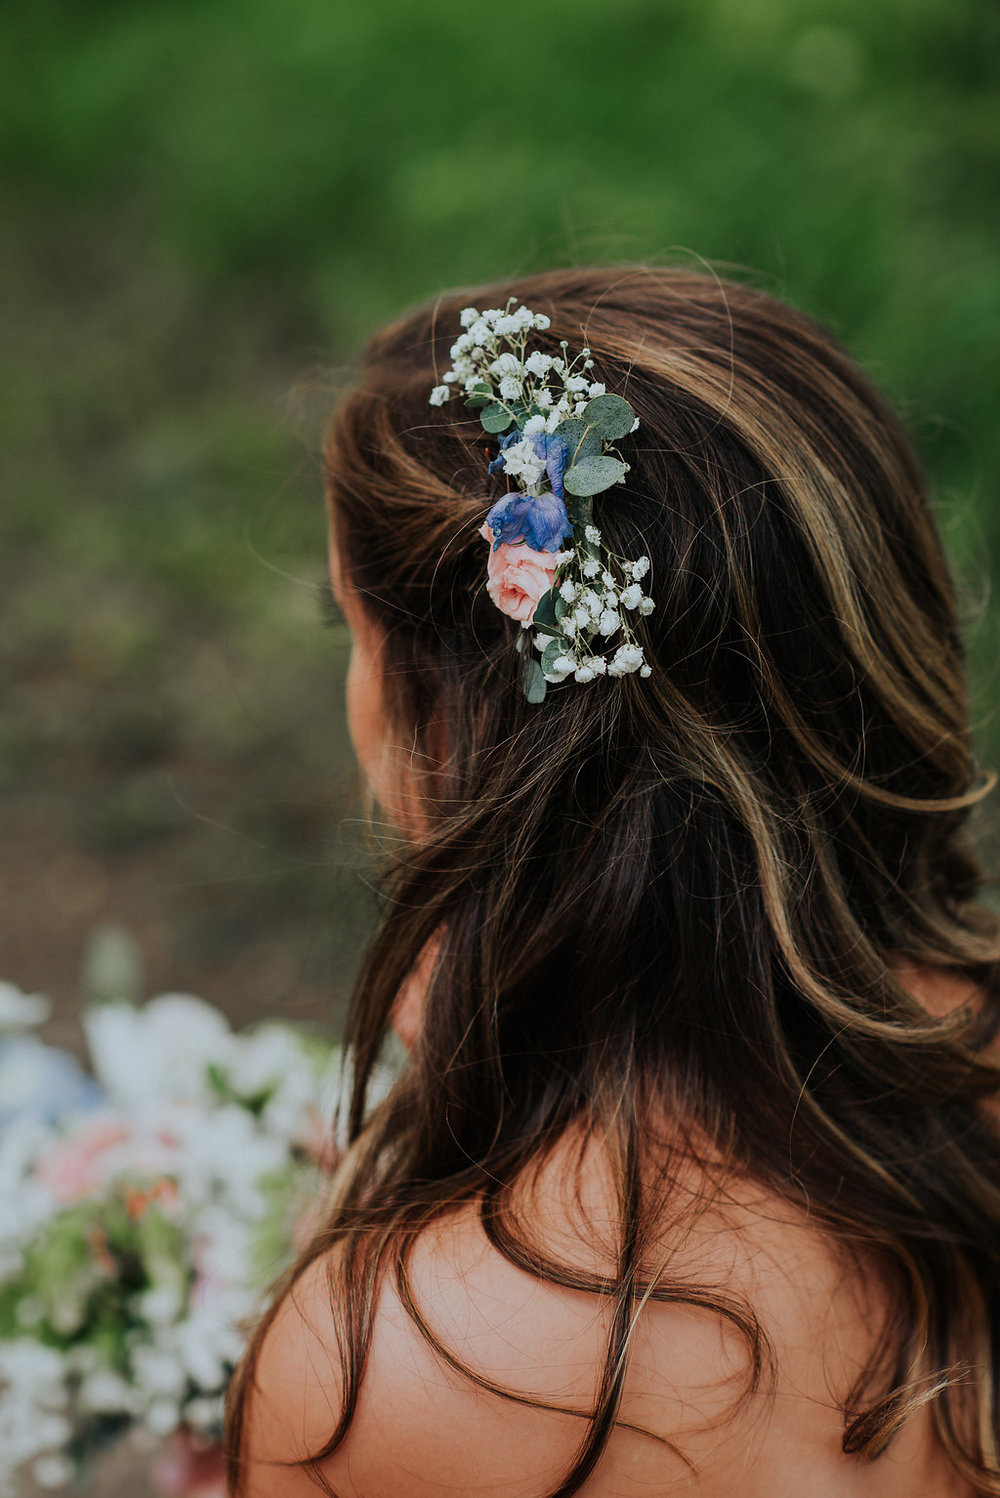 Hair Flowers Wedding - Bridesmaid Hair Ideas